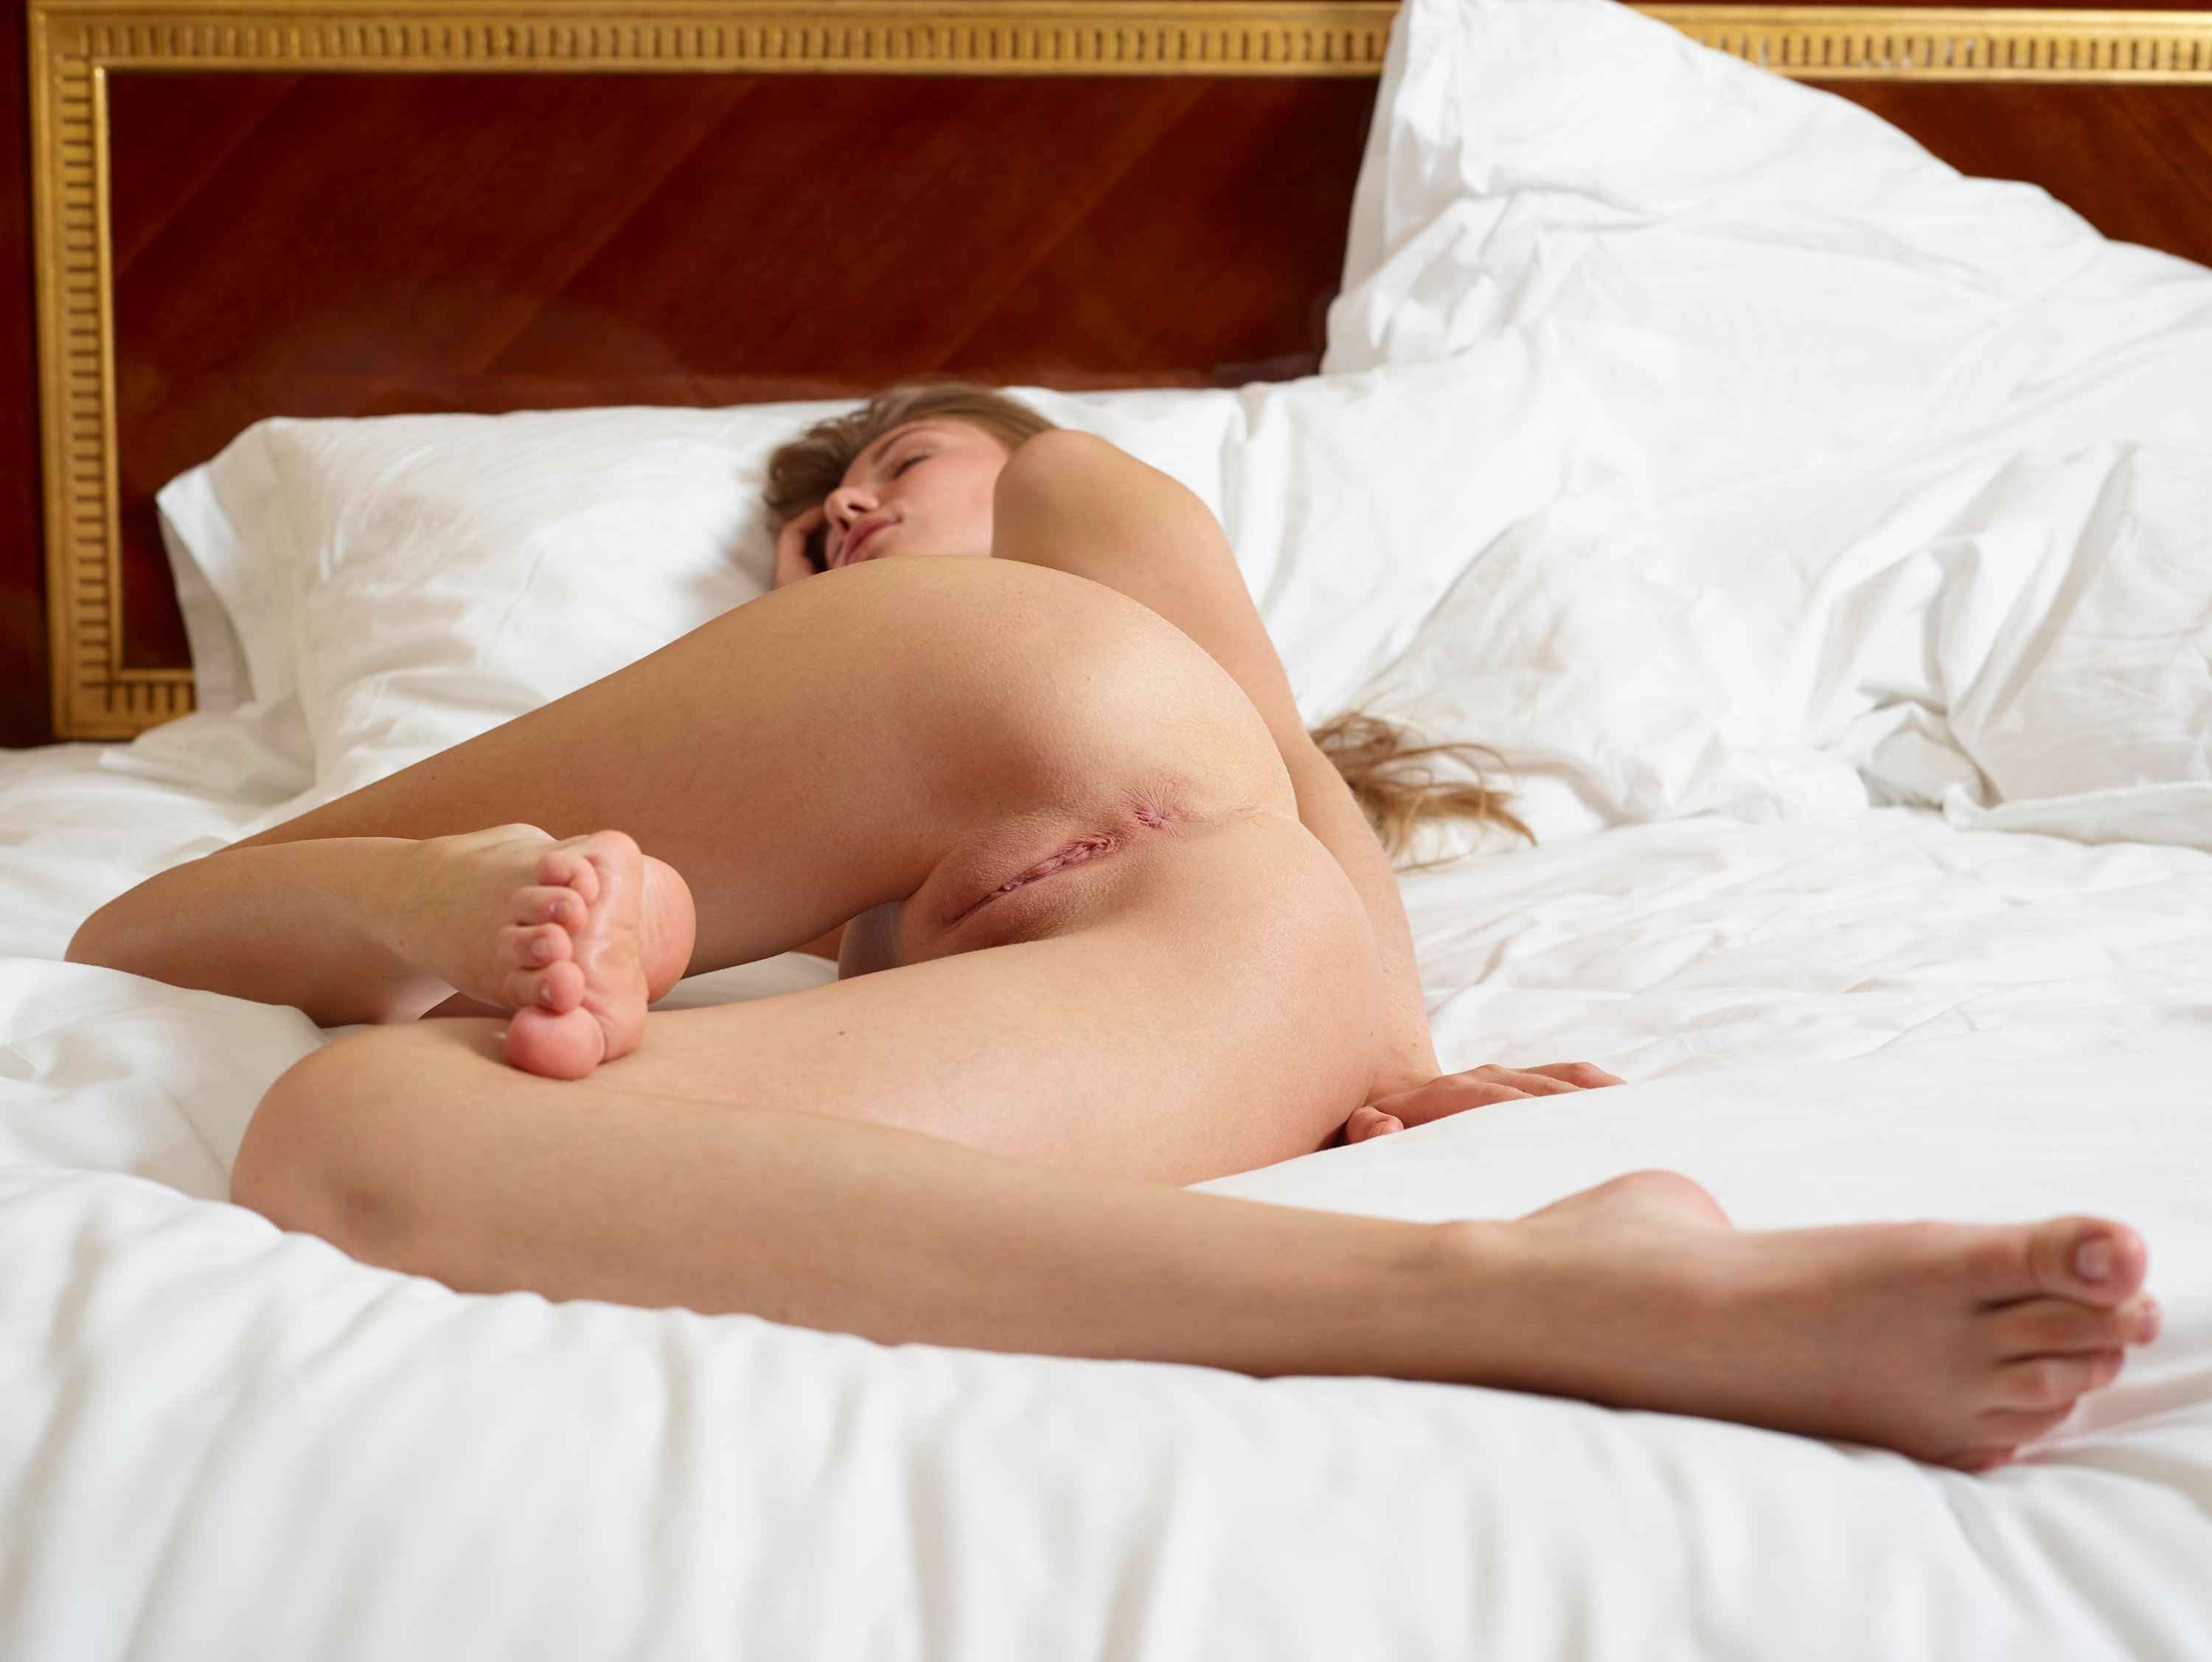 Naked picture sleeping woman